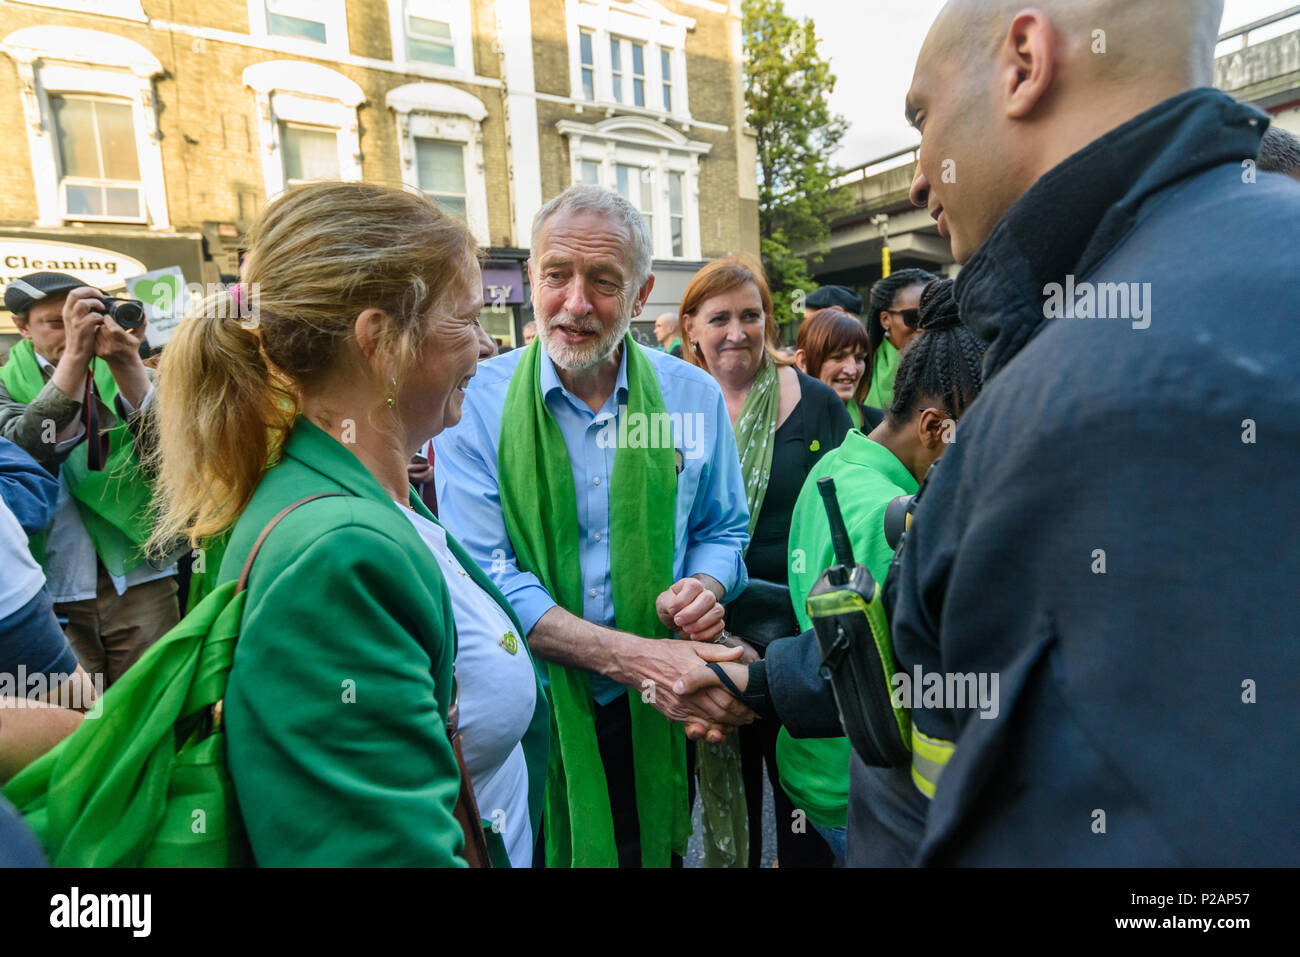 London, UK. 14th June 2018. Labour leader Jeremy Corbyn shakes hands with a firefighter at Ladbroke Grove as thousands walk in silence from close to Grenfell Tower remembering the victims of the disaster on the first anniversary of the disastrous fire which killed 72 and left survivors traumatised. Many of those made homeless by the fire are still in temporary accomodation a year later despite promises mde by Theresa May and Kensington & Chelsea council, who many fell have failed the local community both before and after the fire. They say had they been listened to and respected Grenfell would - Stock Image